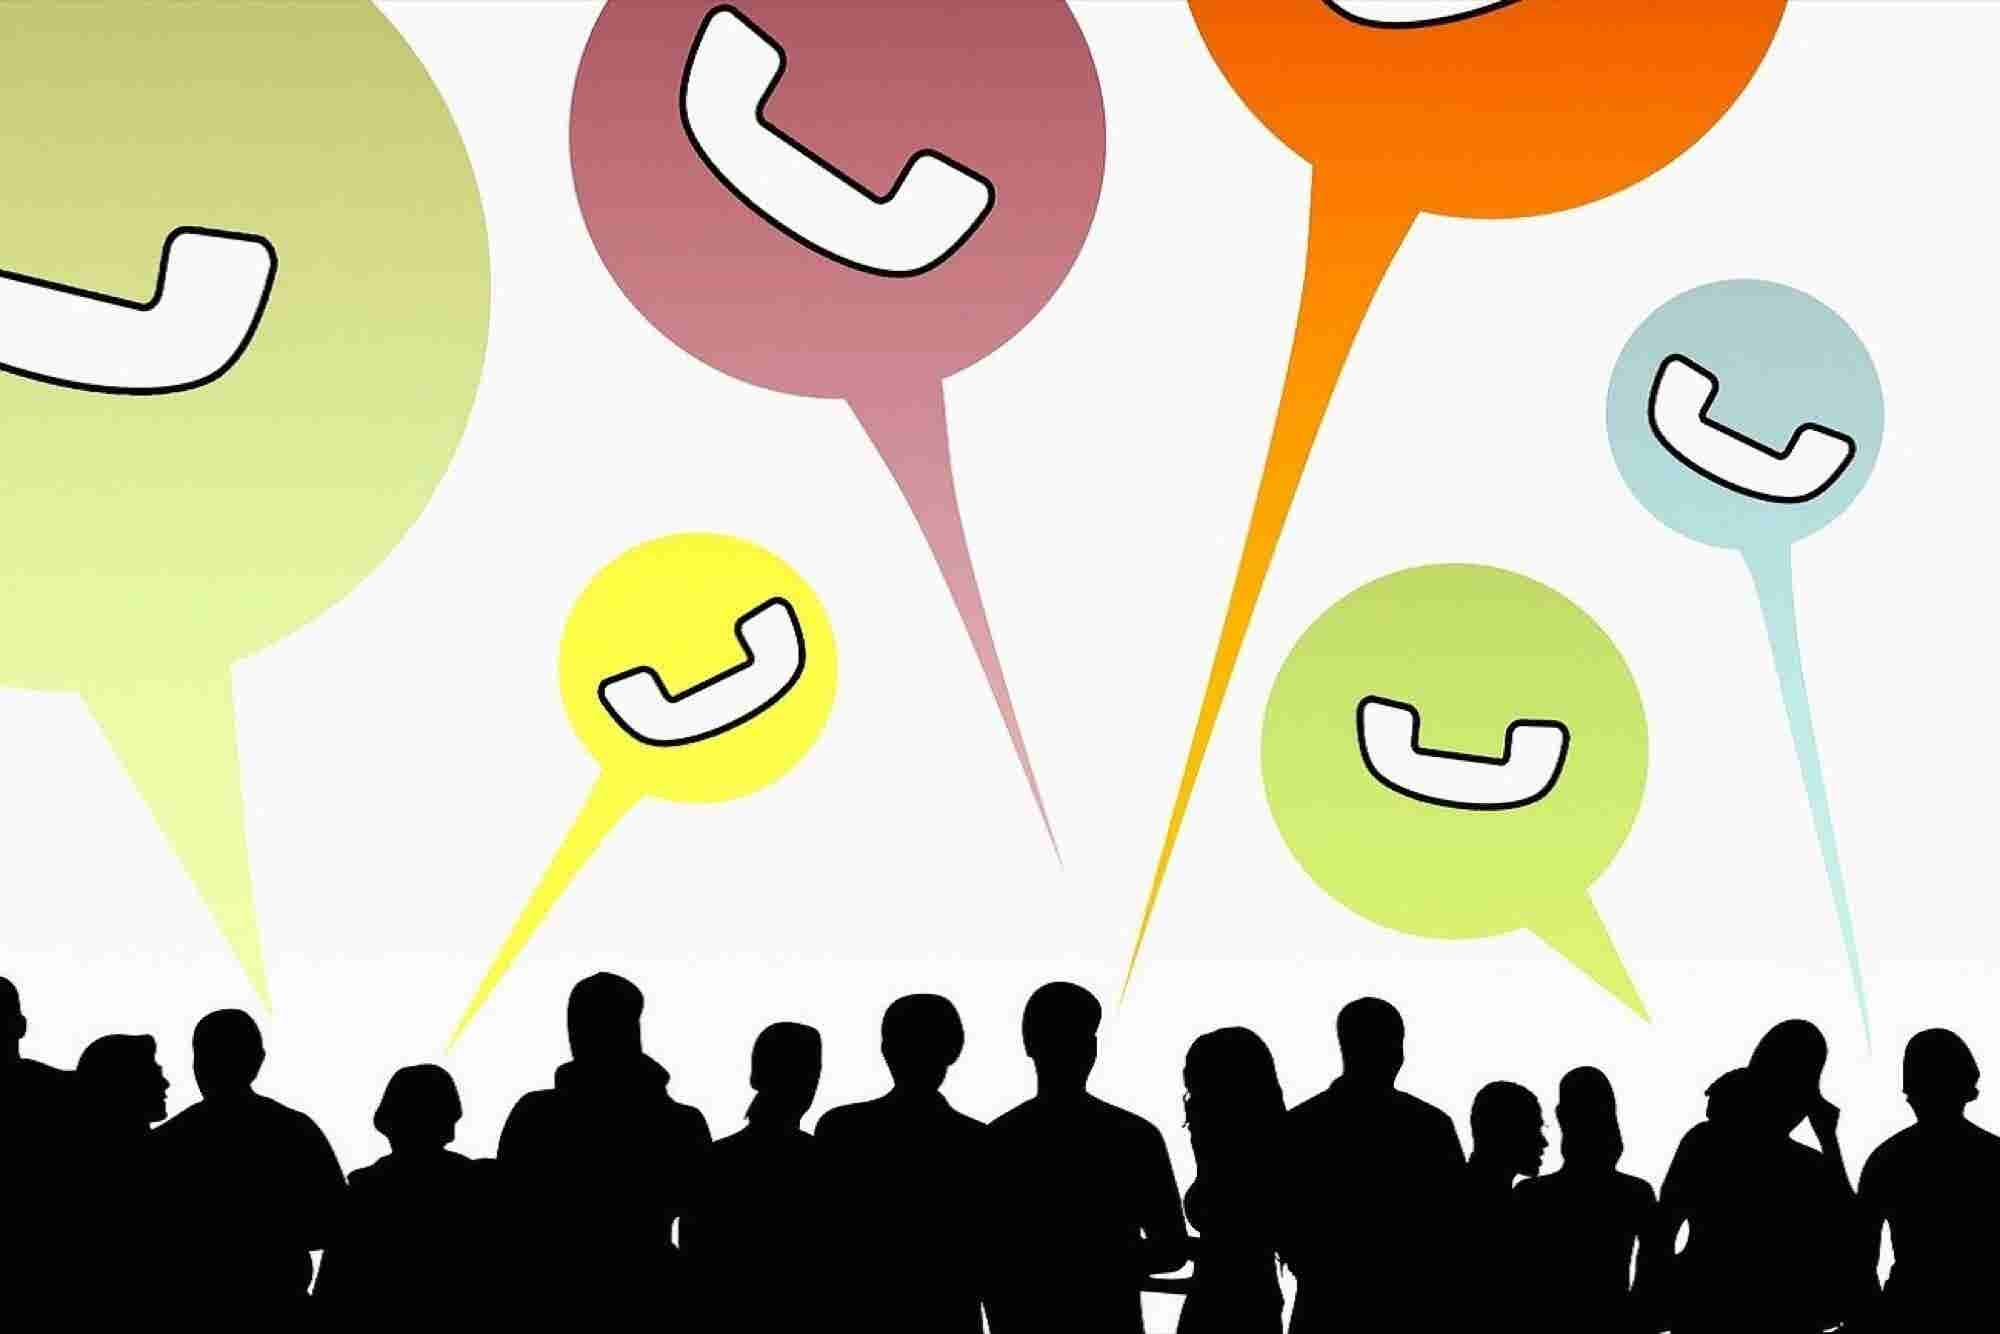 #4 Go-to Apps to Boost Your Company's Internal Communication